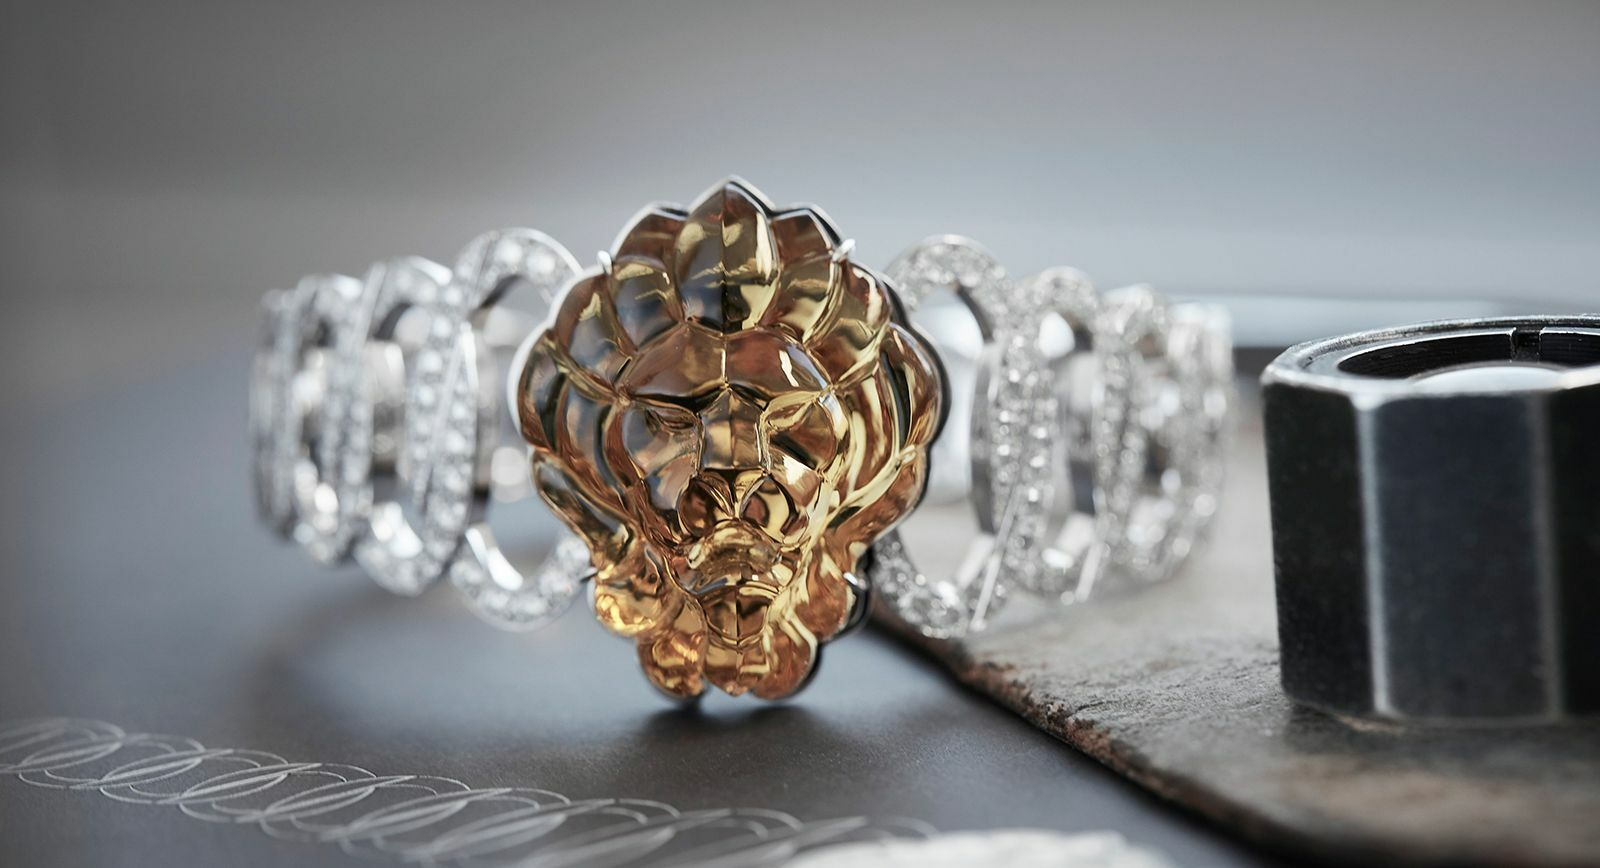 L'Esprit du Lion: a New High Jewellery Collection by Chanel